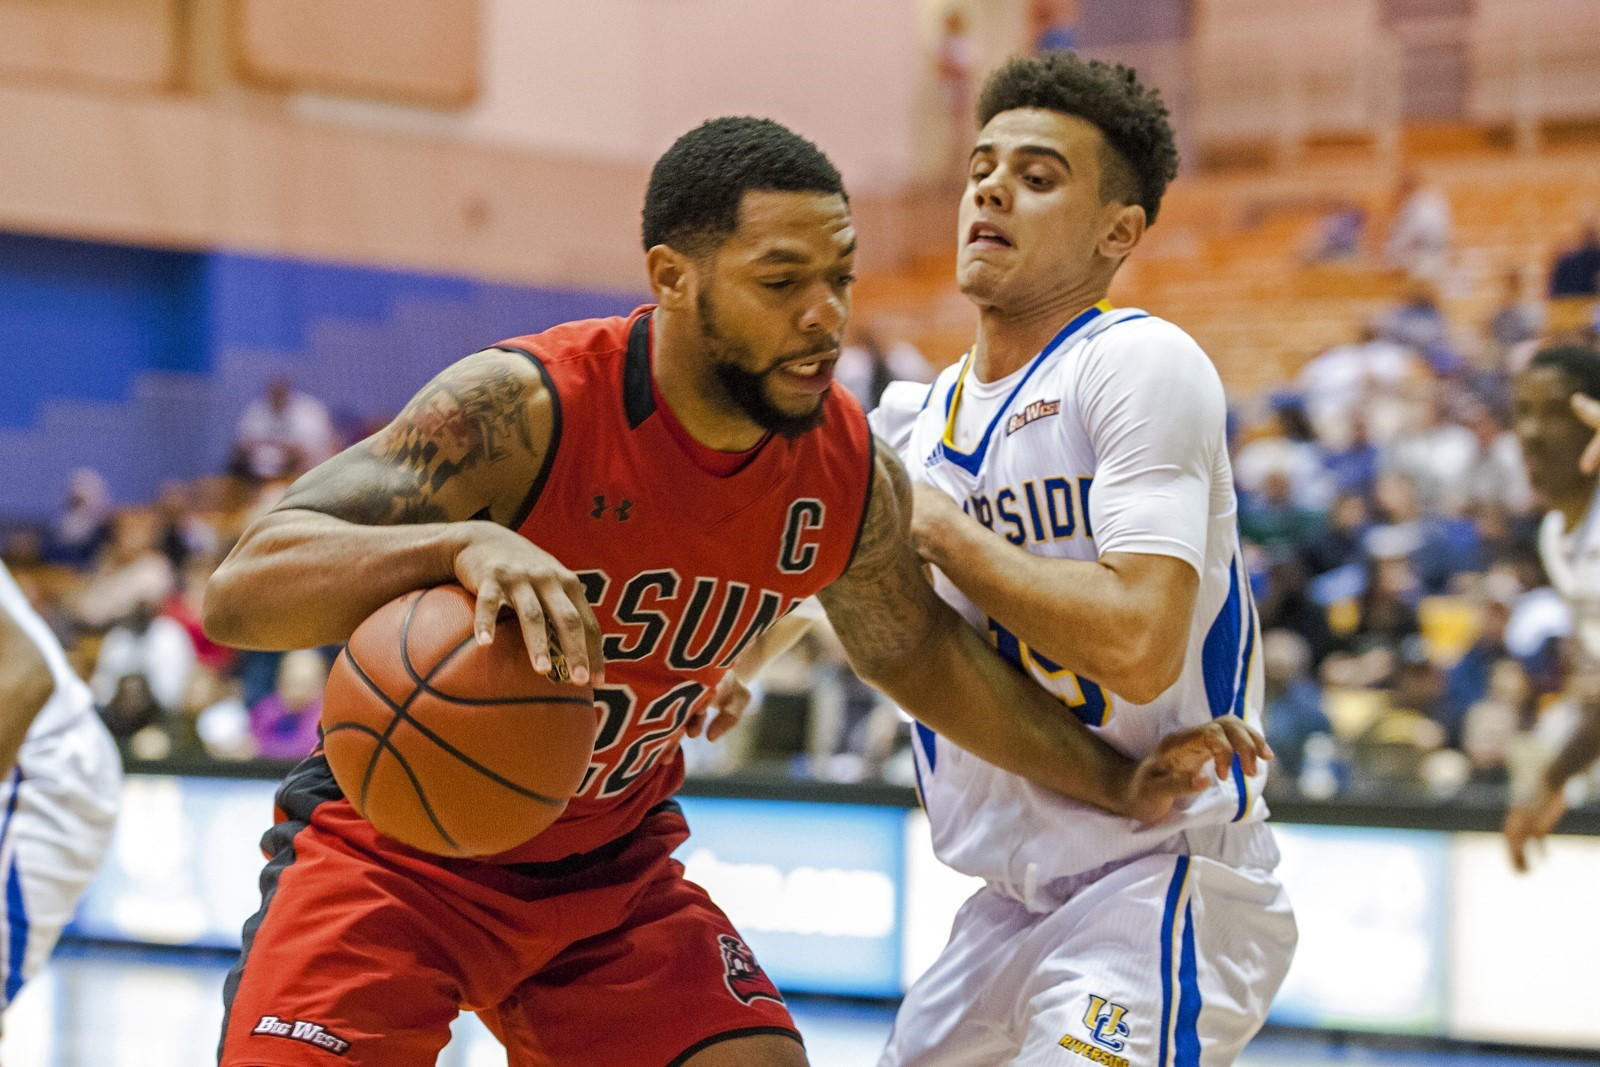 Aaron Parks 2016 17 Men S Basketball Csun Athletics Was elected the 46th president of the united states on nov. aaron parks 2016 17 men s